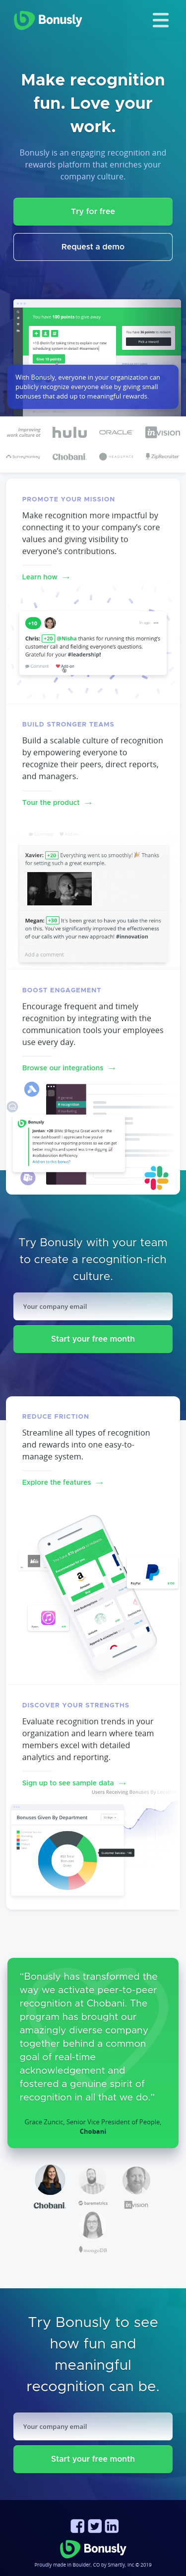 Example of Design for Business & Industrial, Mobile Landing Page by bonus.ly | Mobile Landing Page Design